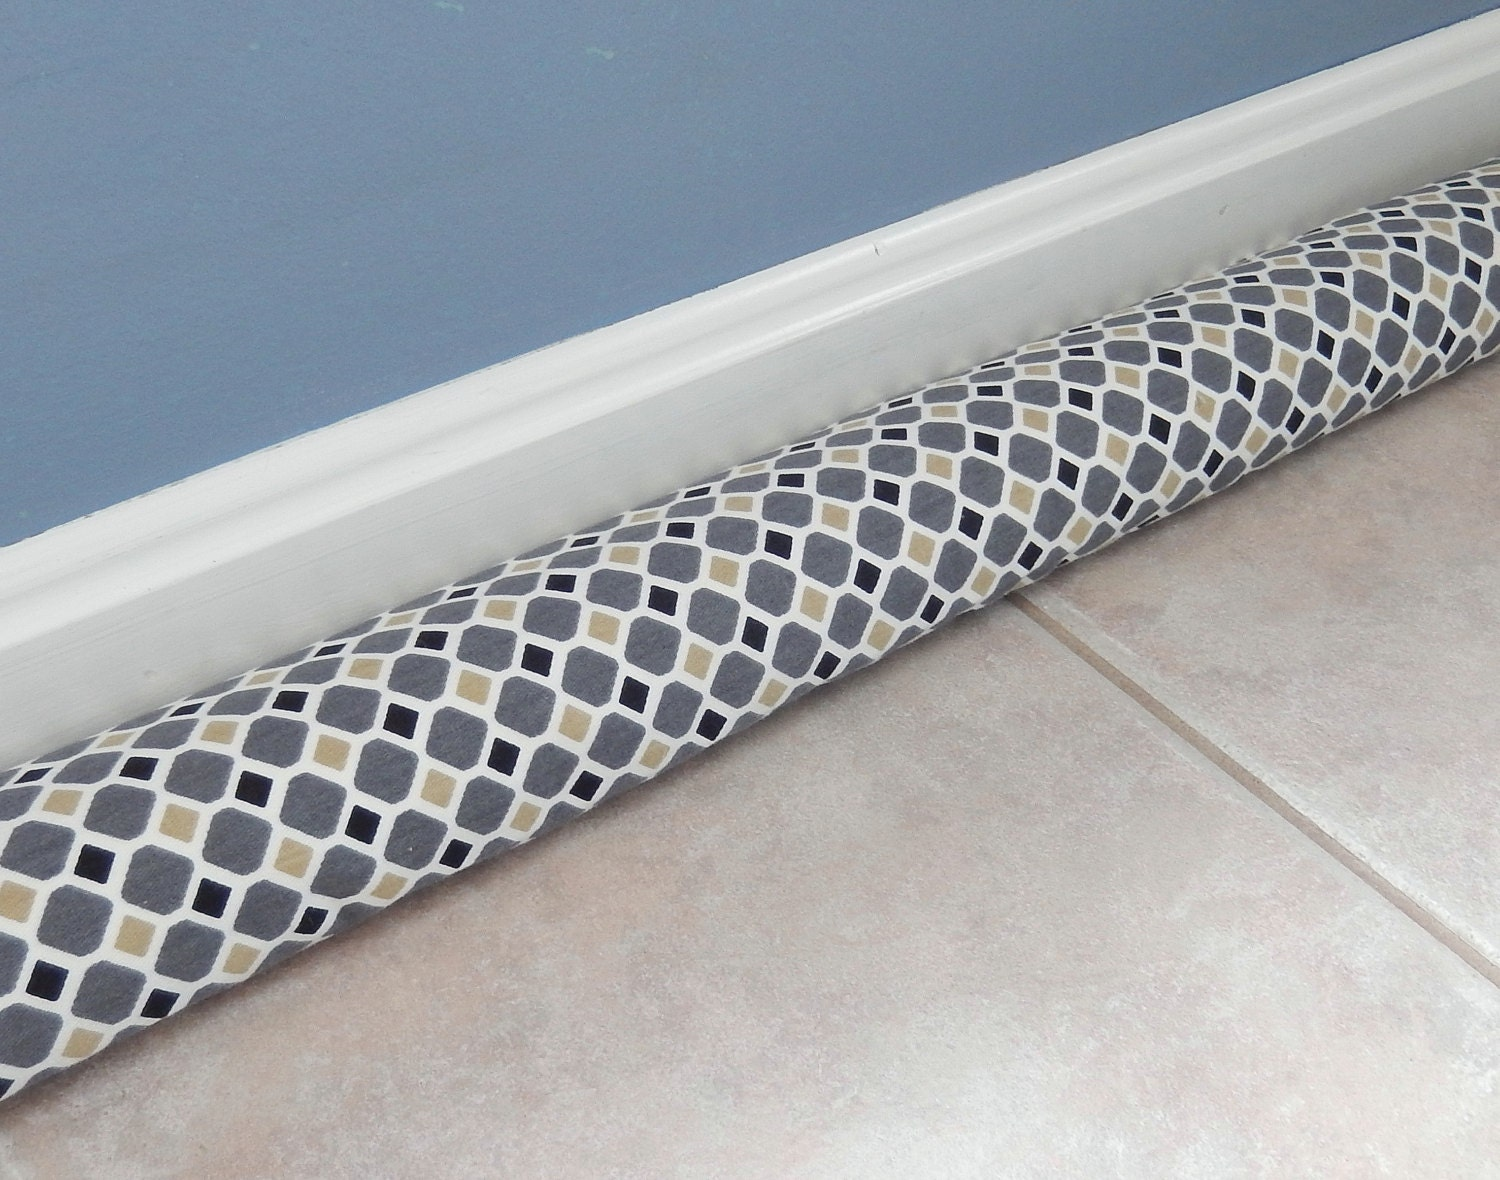 Door Draft Stopper Door Snake Breeze Blocker By Pookadellas